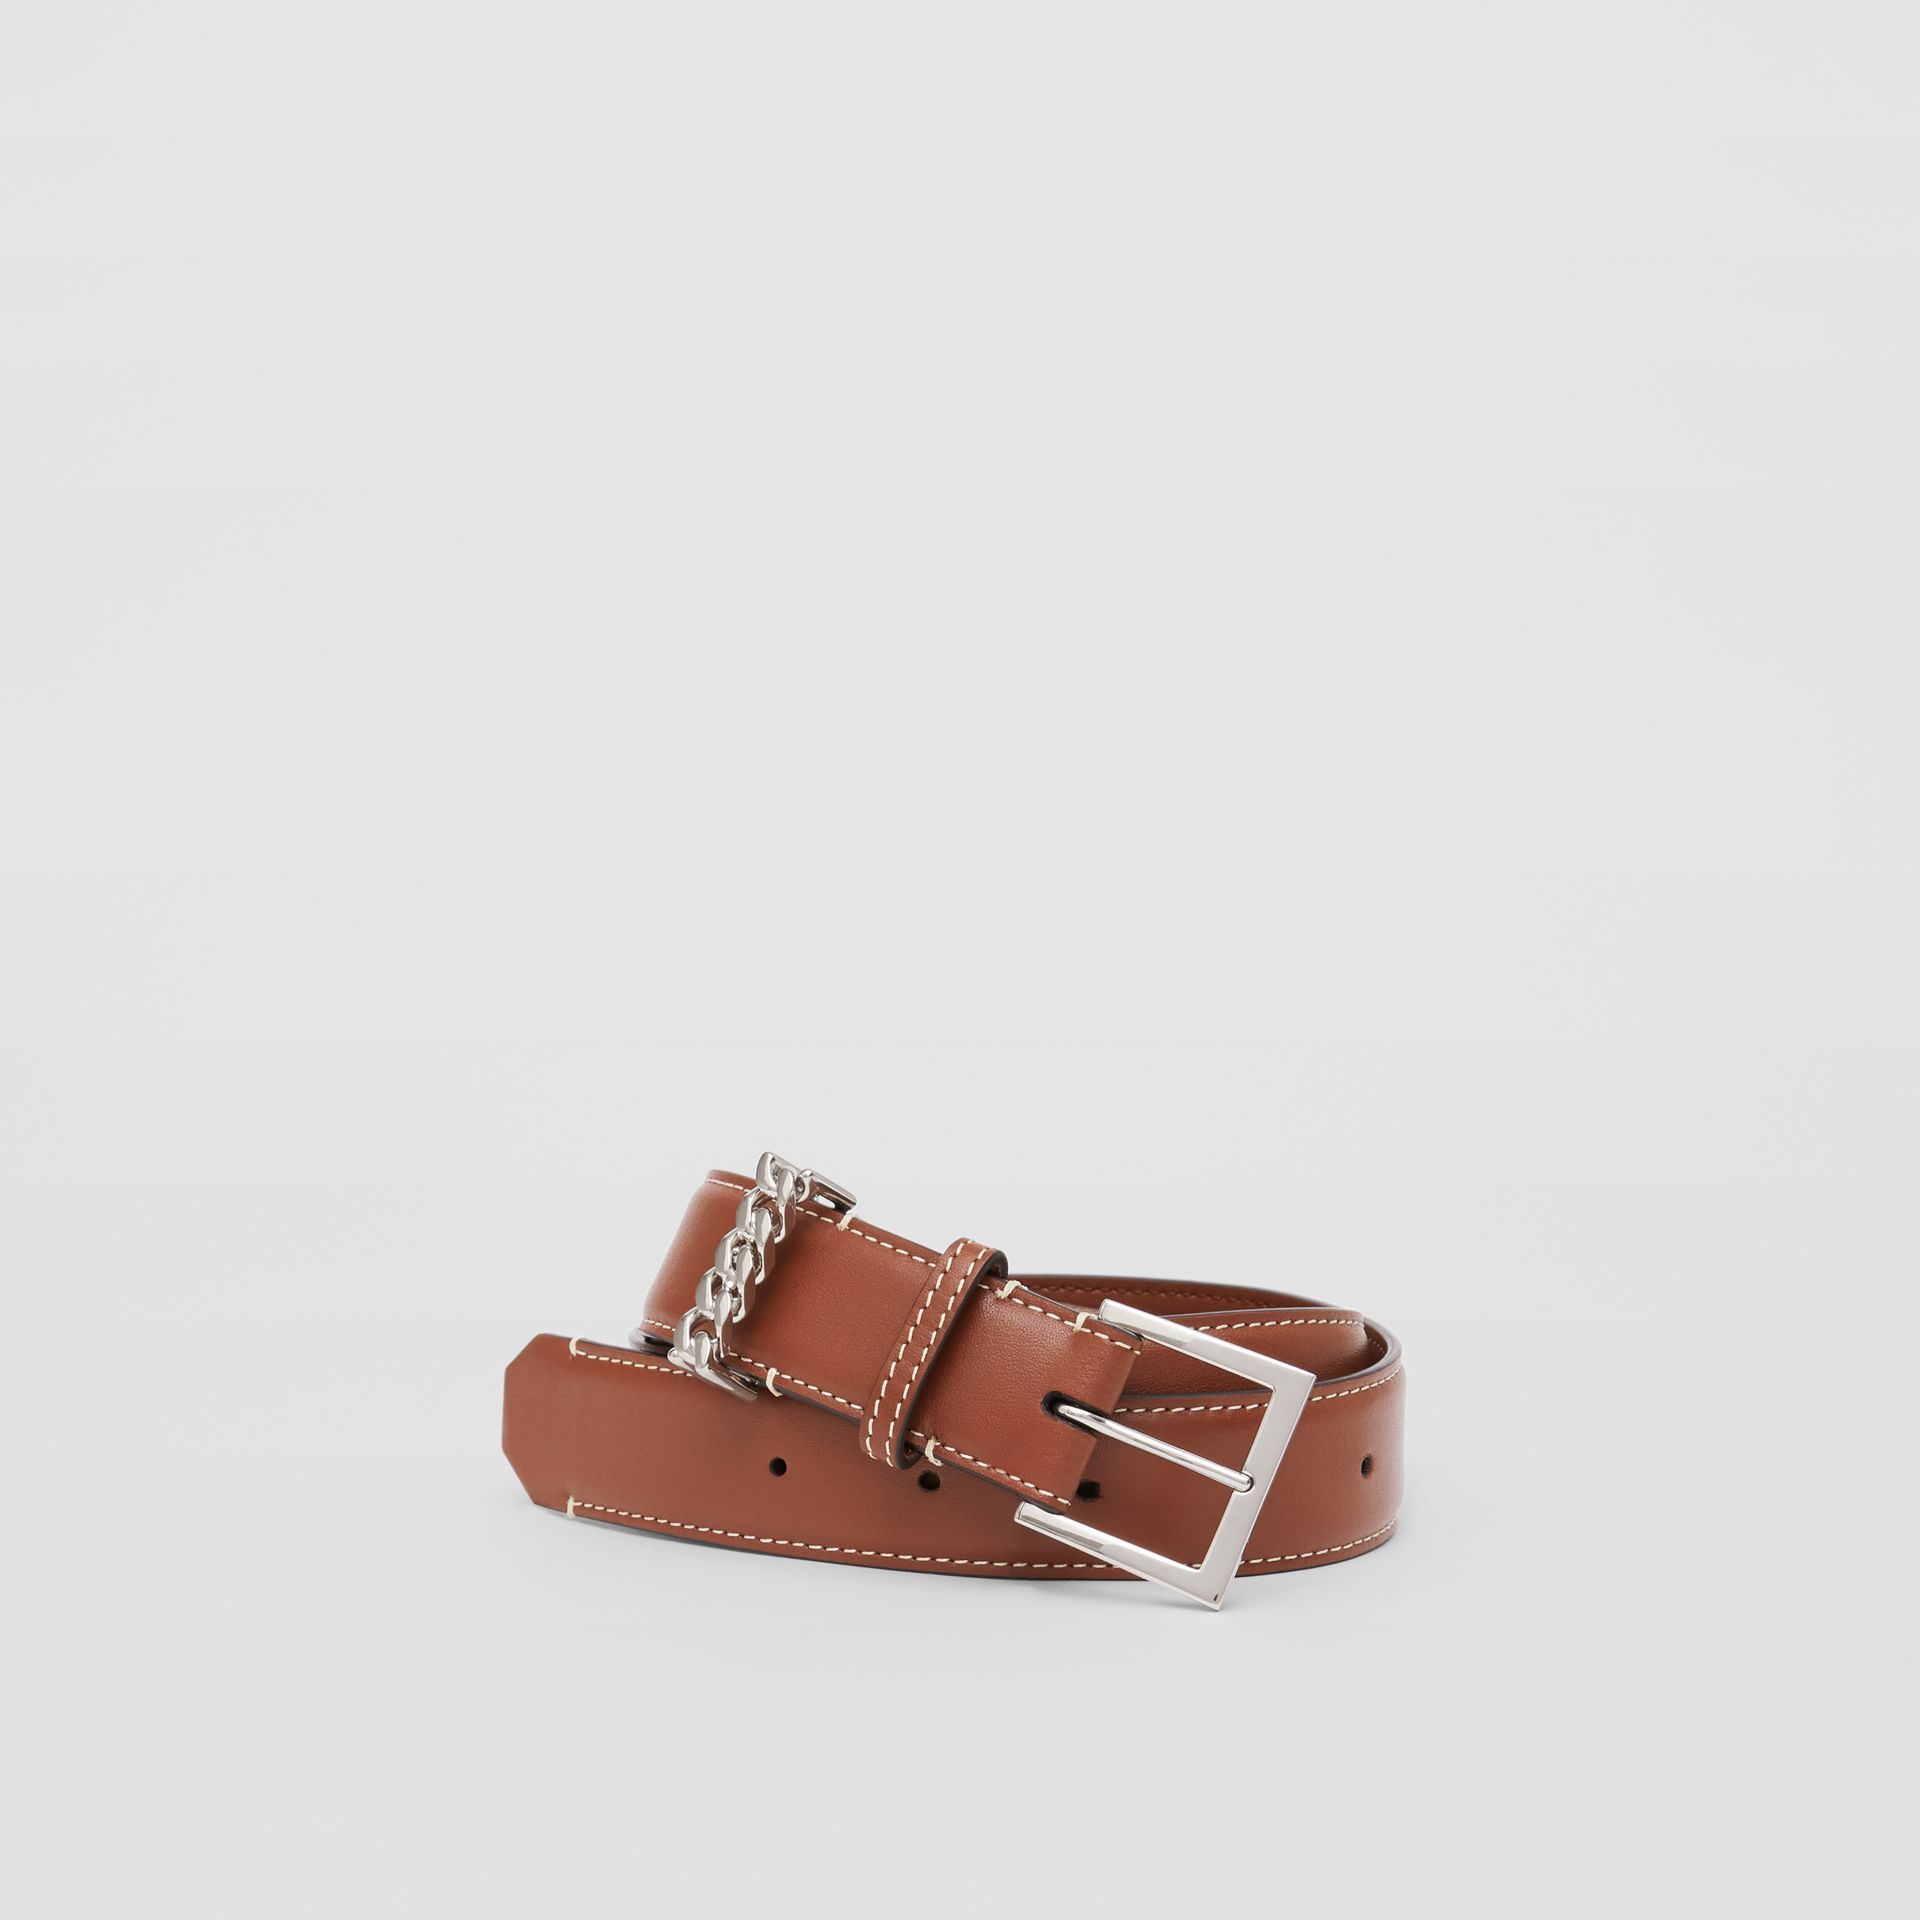 Chain Detail Topstitched Leather Belt in Tan/ecru - Women | Burberry - gallery image 0